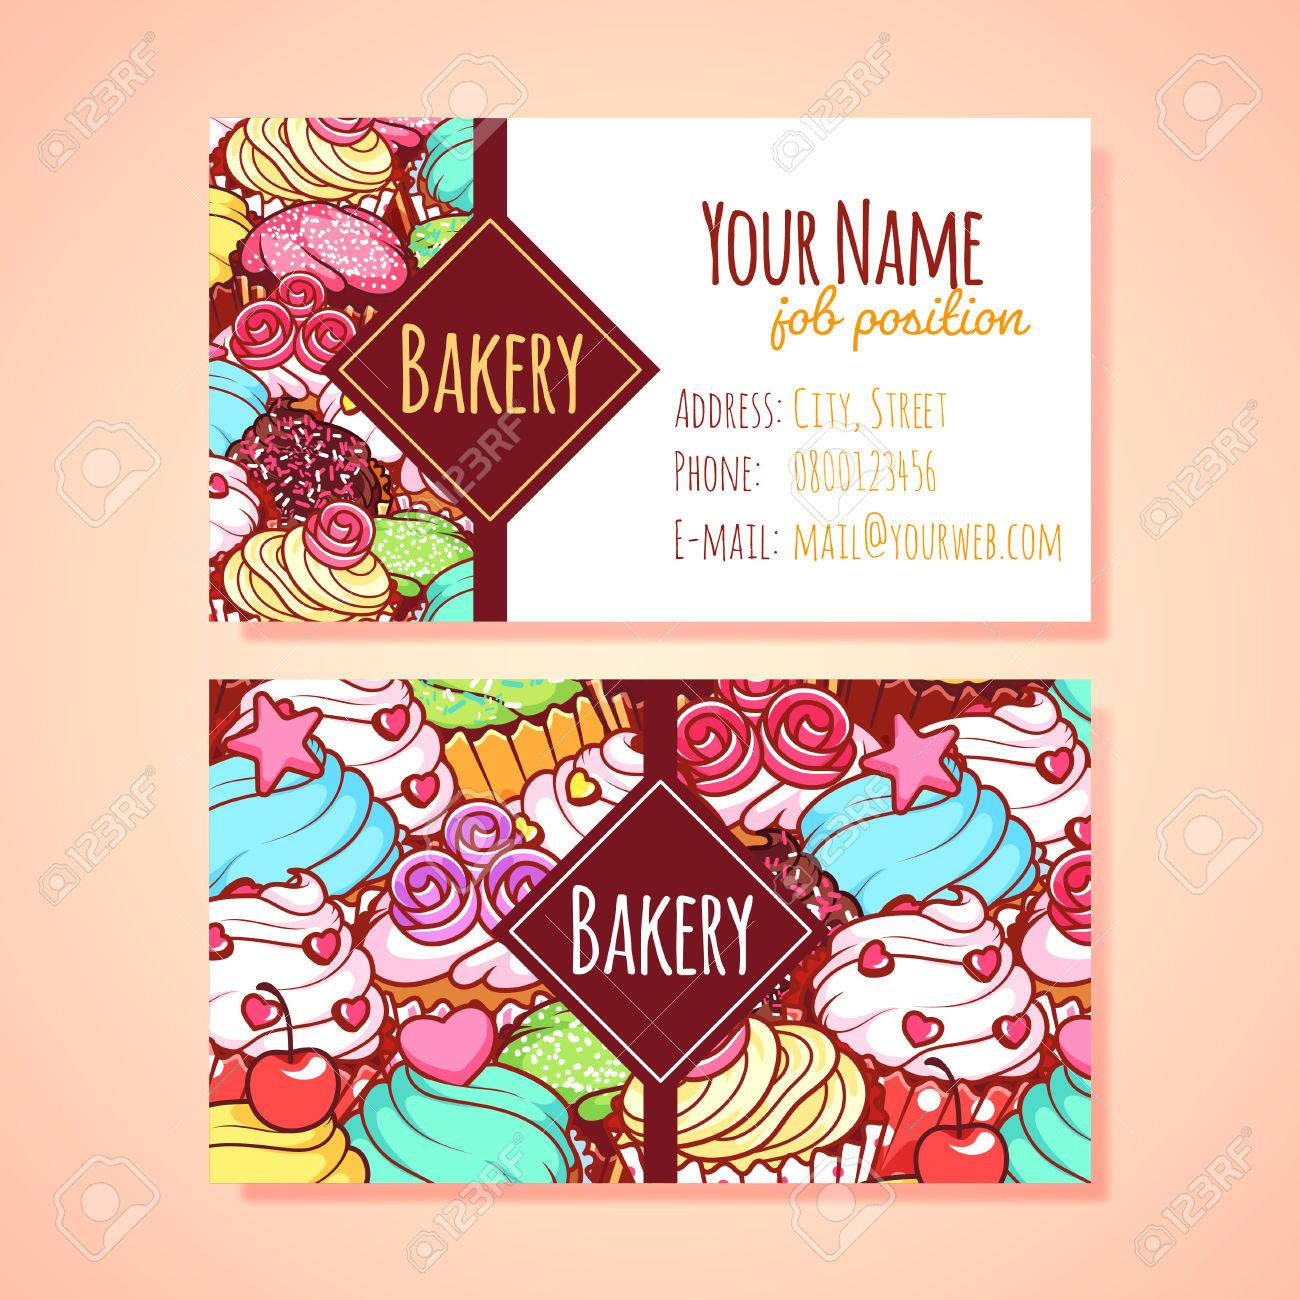 hight resolution of two horizontal business card template for pastry shop clip art illustration stock vector 49040285